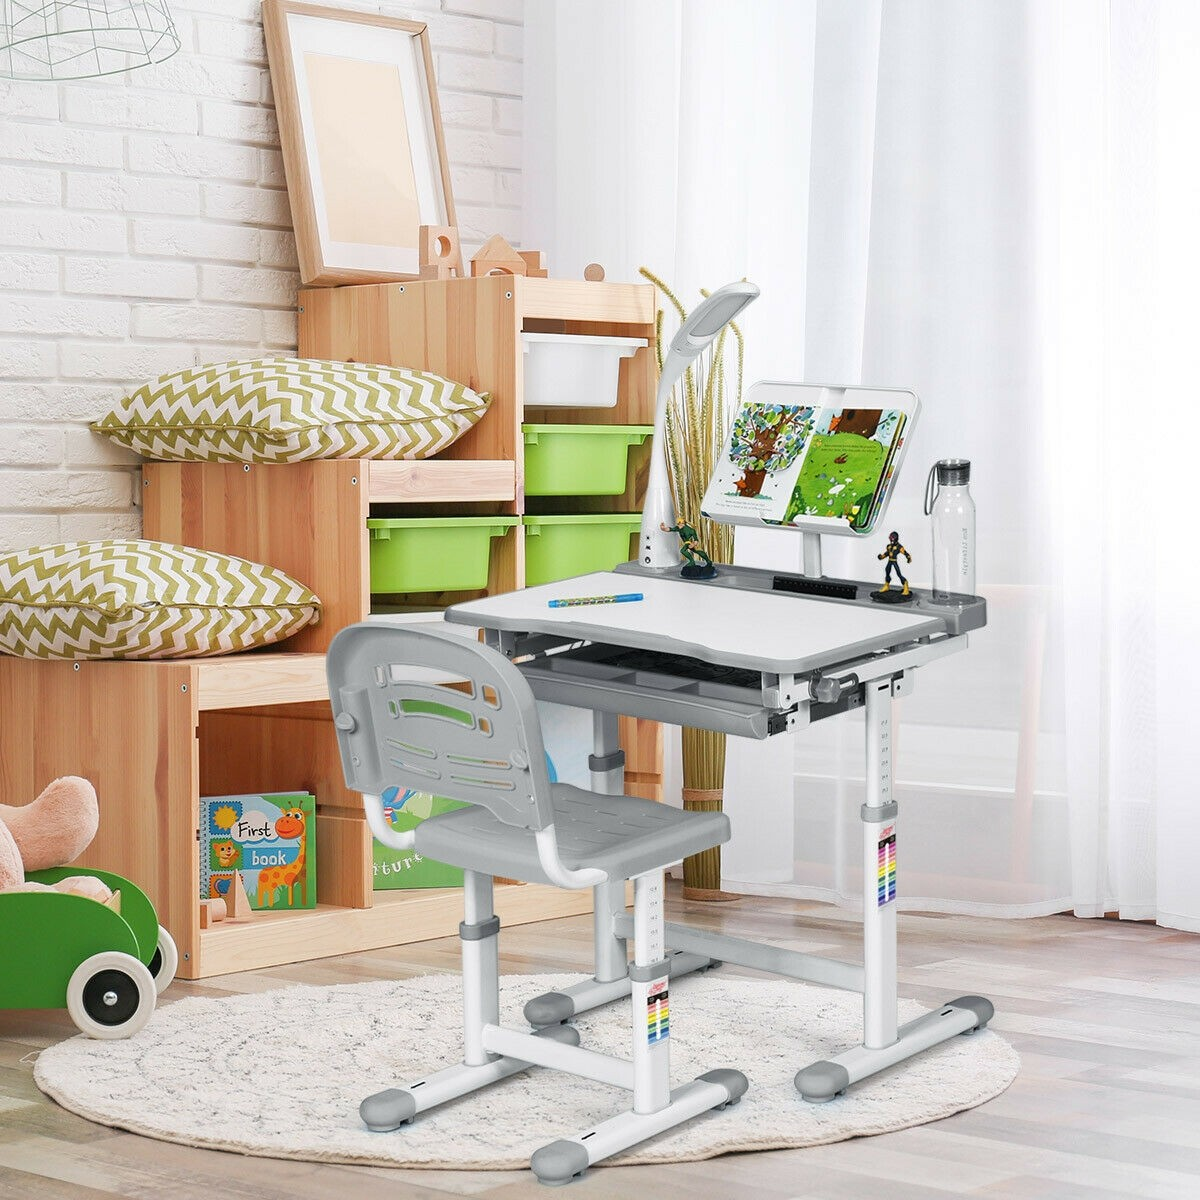 Image of: Adjustable Kids Desk Chair Set With Lamp And Bookstand Gray